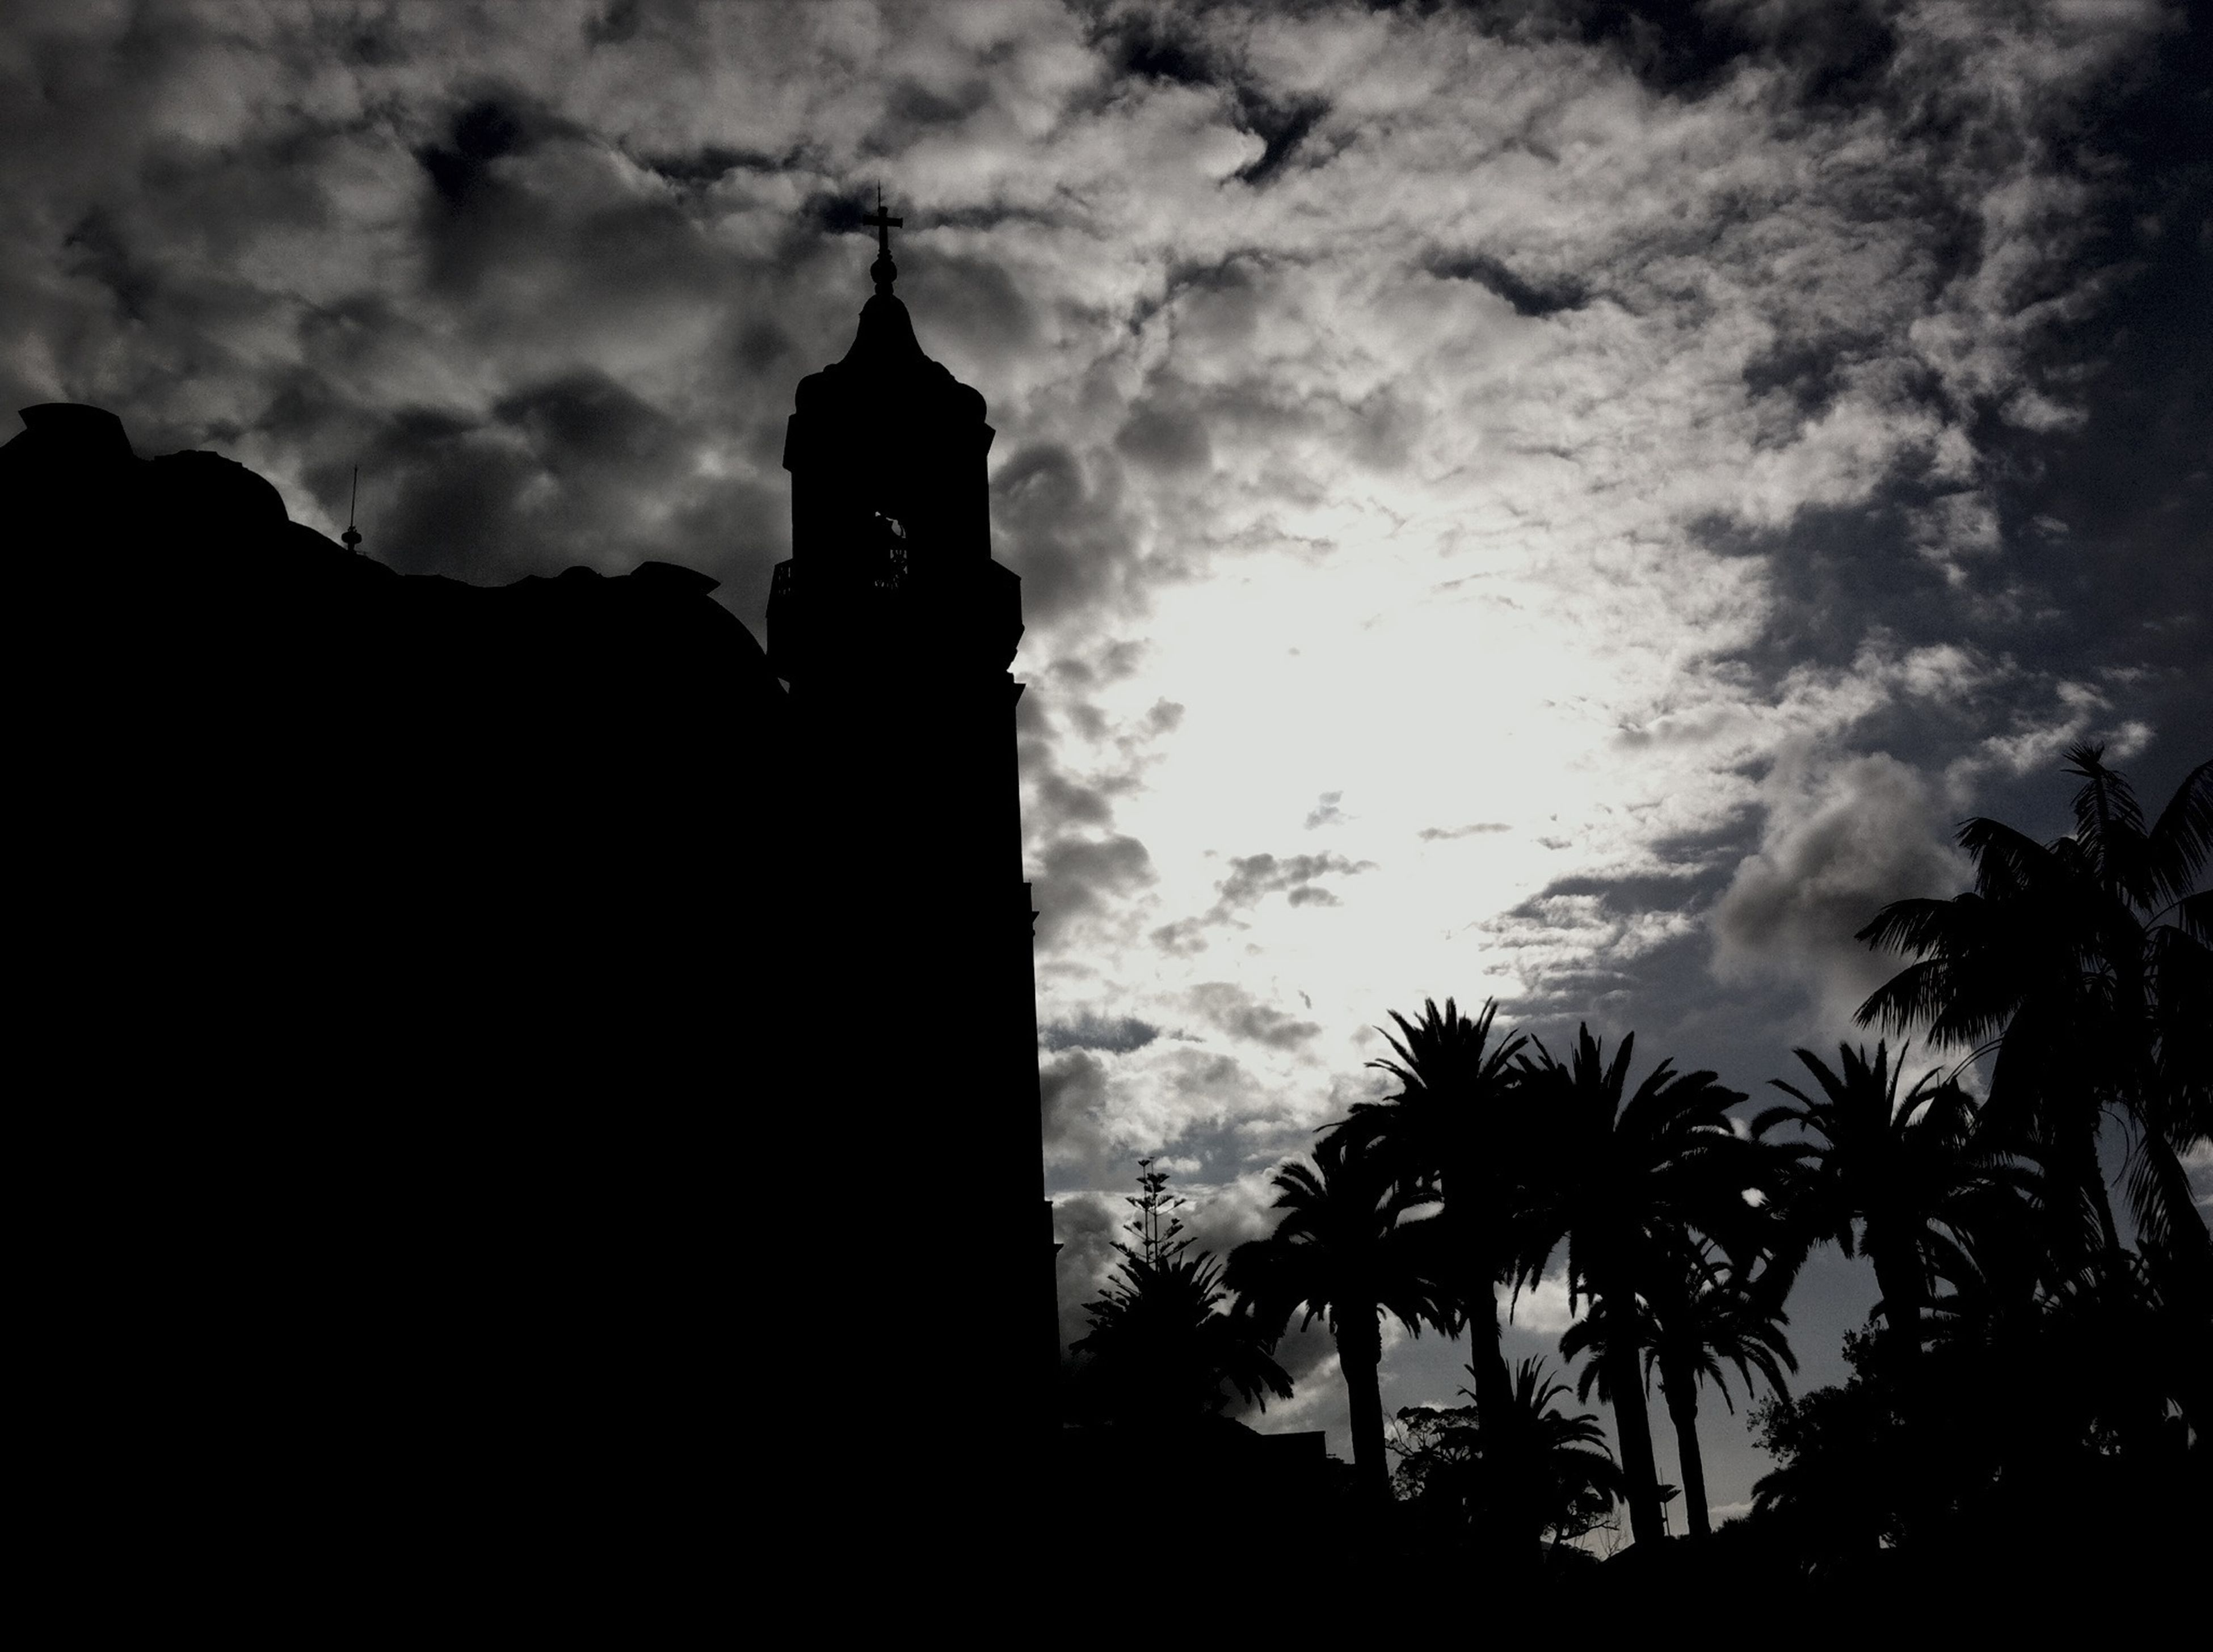 sky, silhouette, architecture, low angle view, built structure, building exterior, cloud - sky, cloudy, tree, cloud, tower, dusk, religion, church, outdoors, spirituality, nature, no people, outline